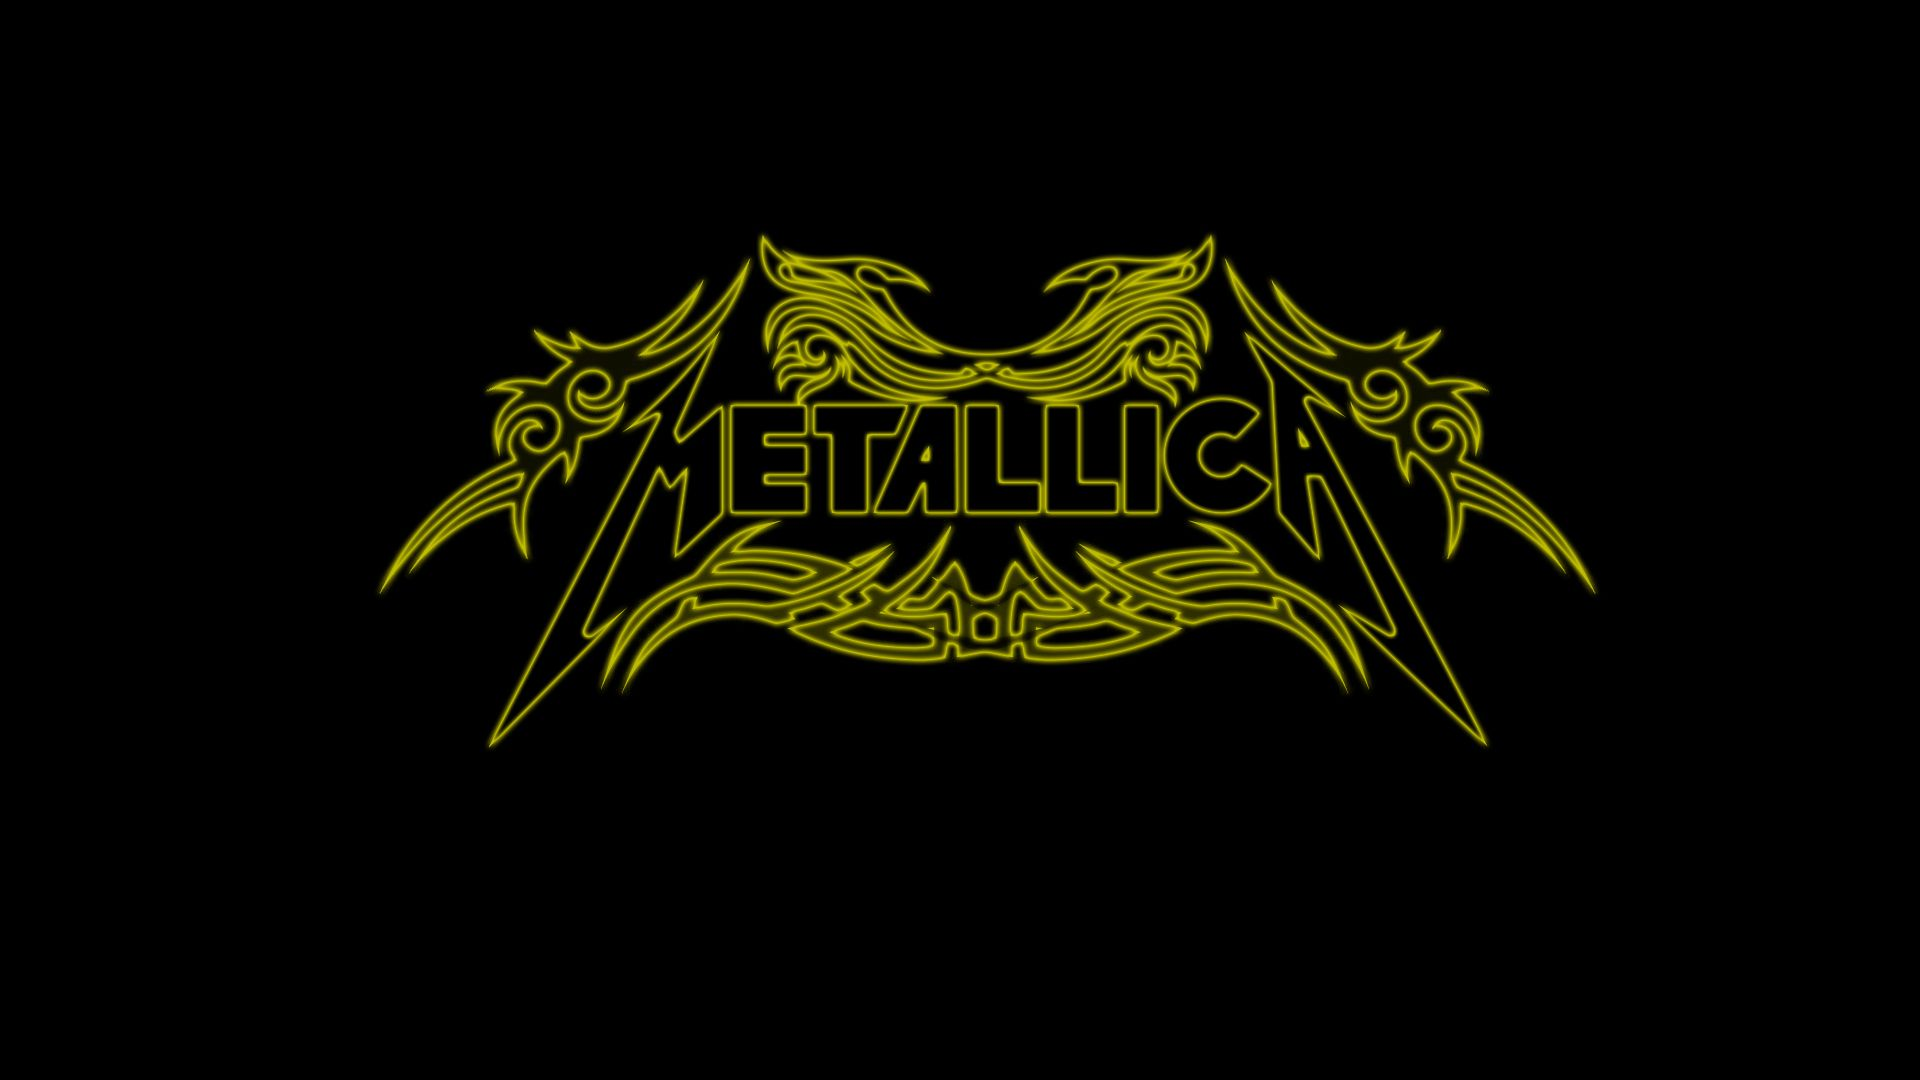 metallica lighting logo wallpaper - photo #22